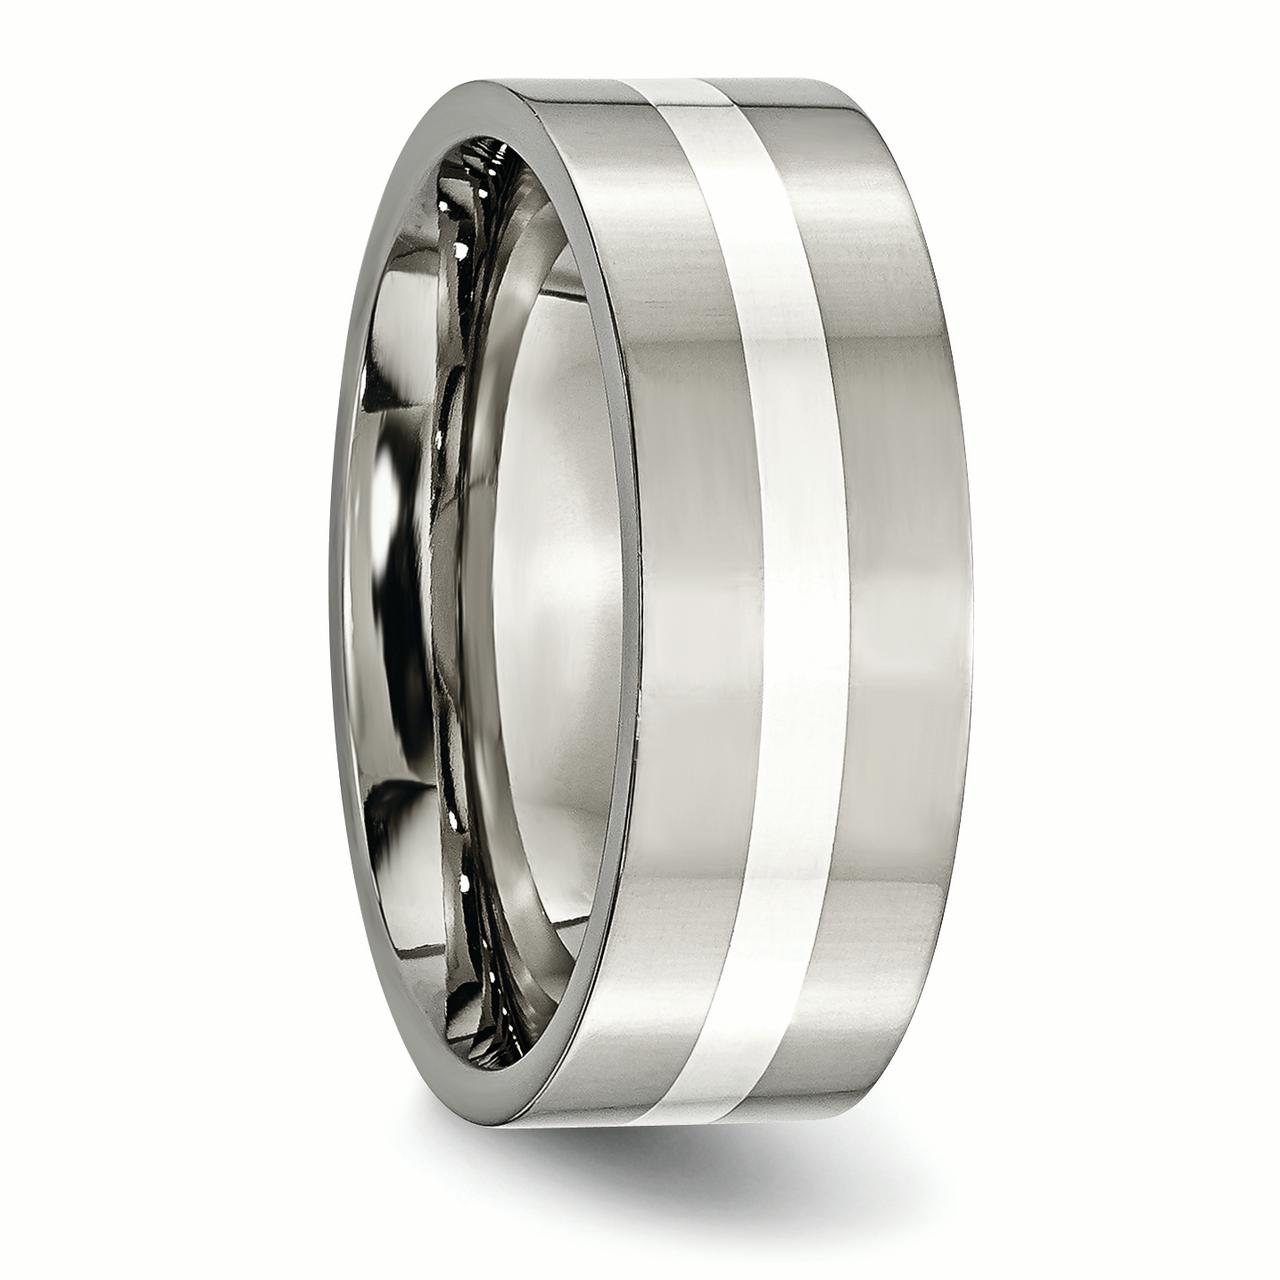 Titanium 925 Sterling Silver Inlay Flat 8mm Wedding Ring Band Size 7.00 Precious Metal Fine Jewelry Gifts For Women For Her - image 3 de 6